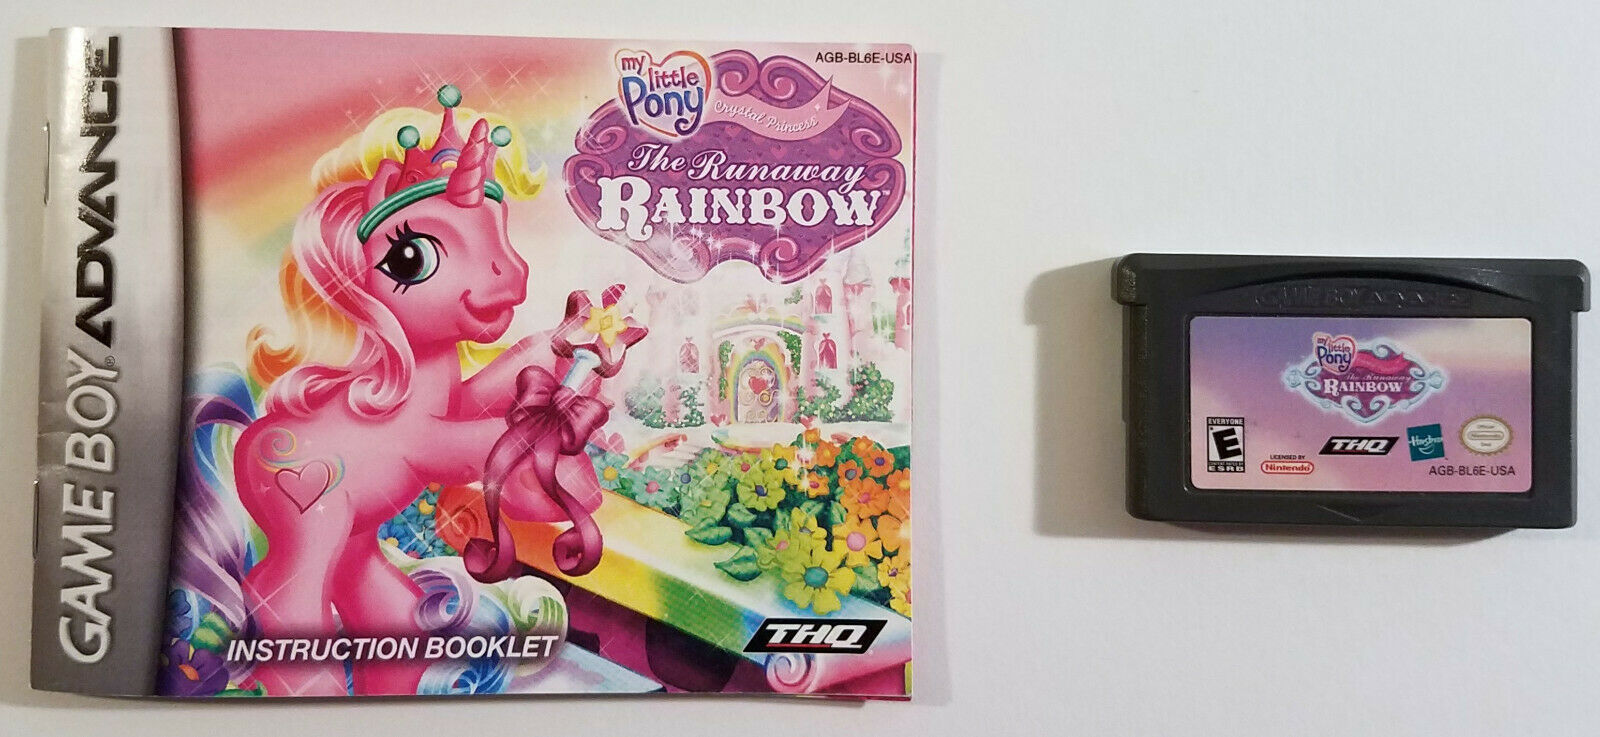 My Little Pony Runaway Rainbow Game Boy Advance Cartridge and Booklet Only